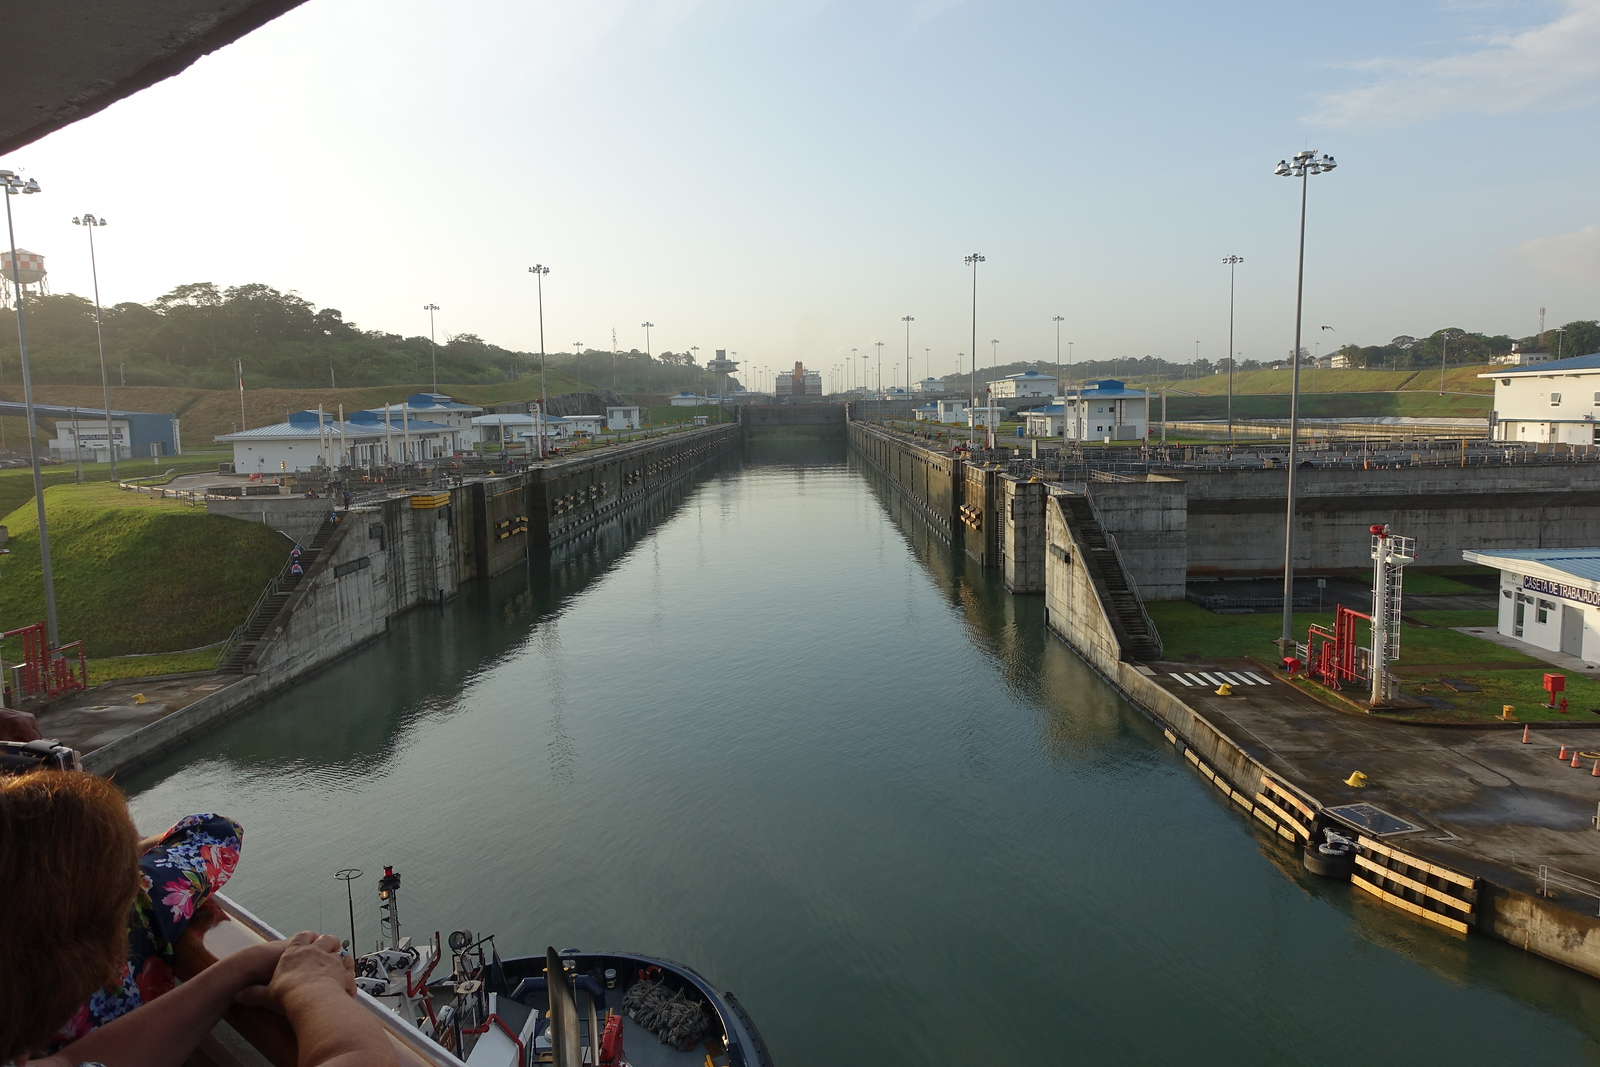 Entry Through Panama Canal into Gatun Lake (3 Locks)